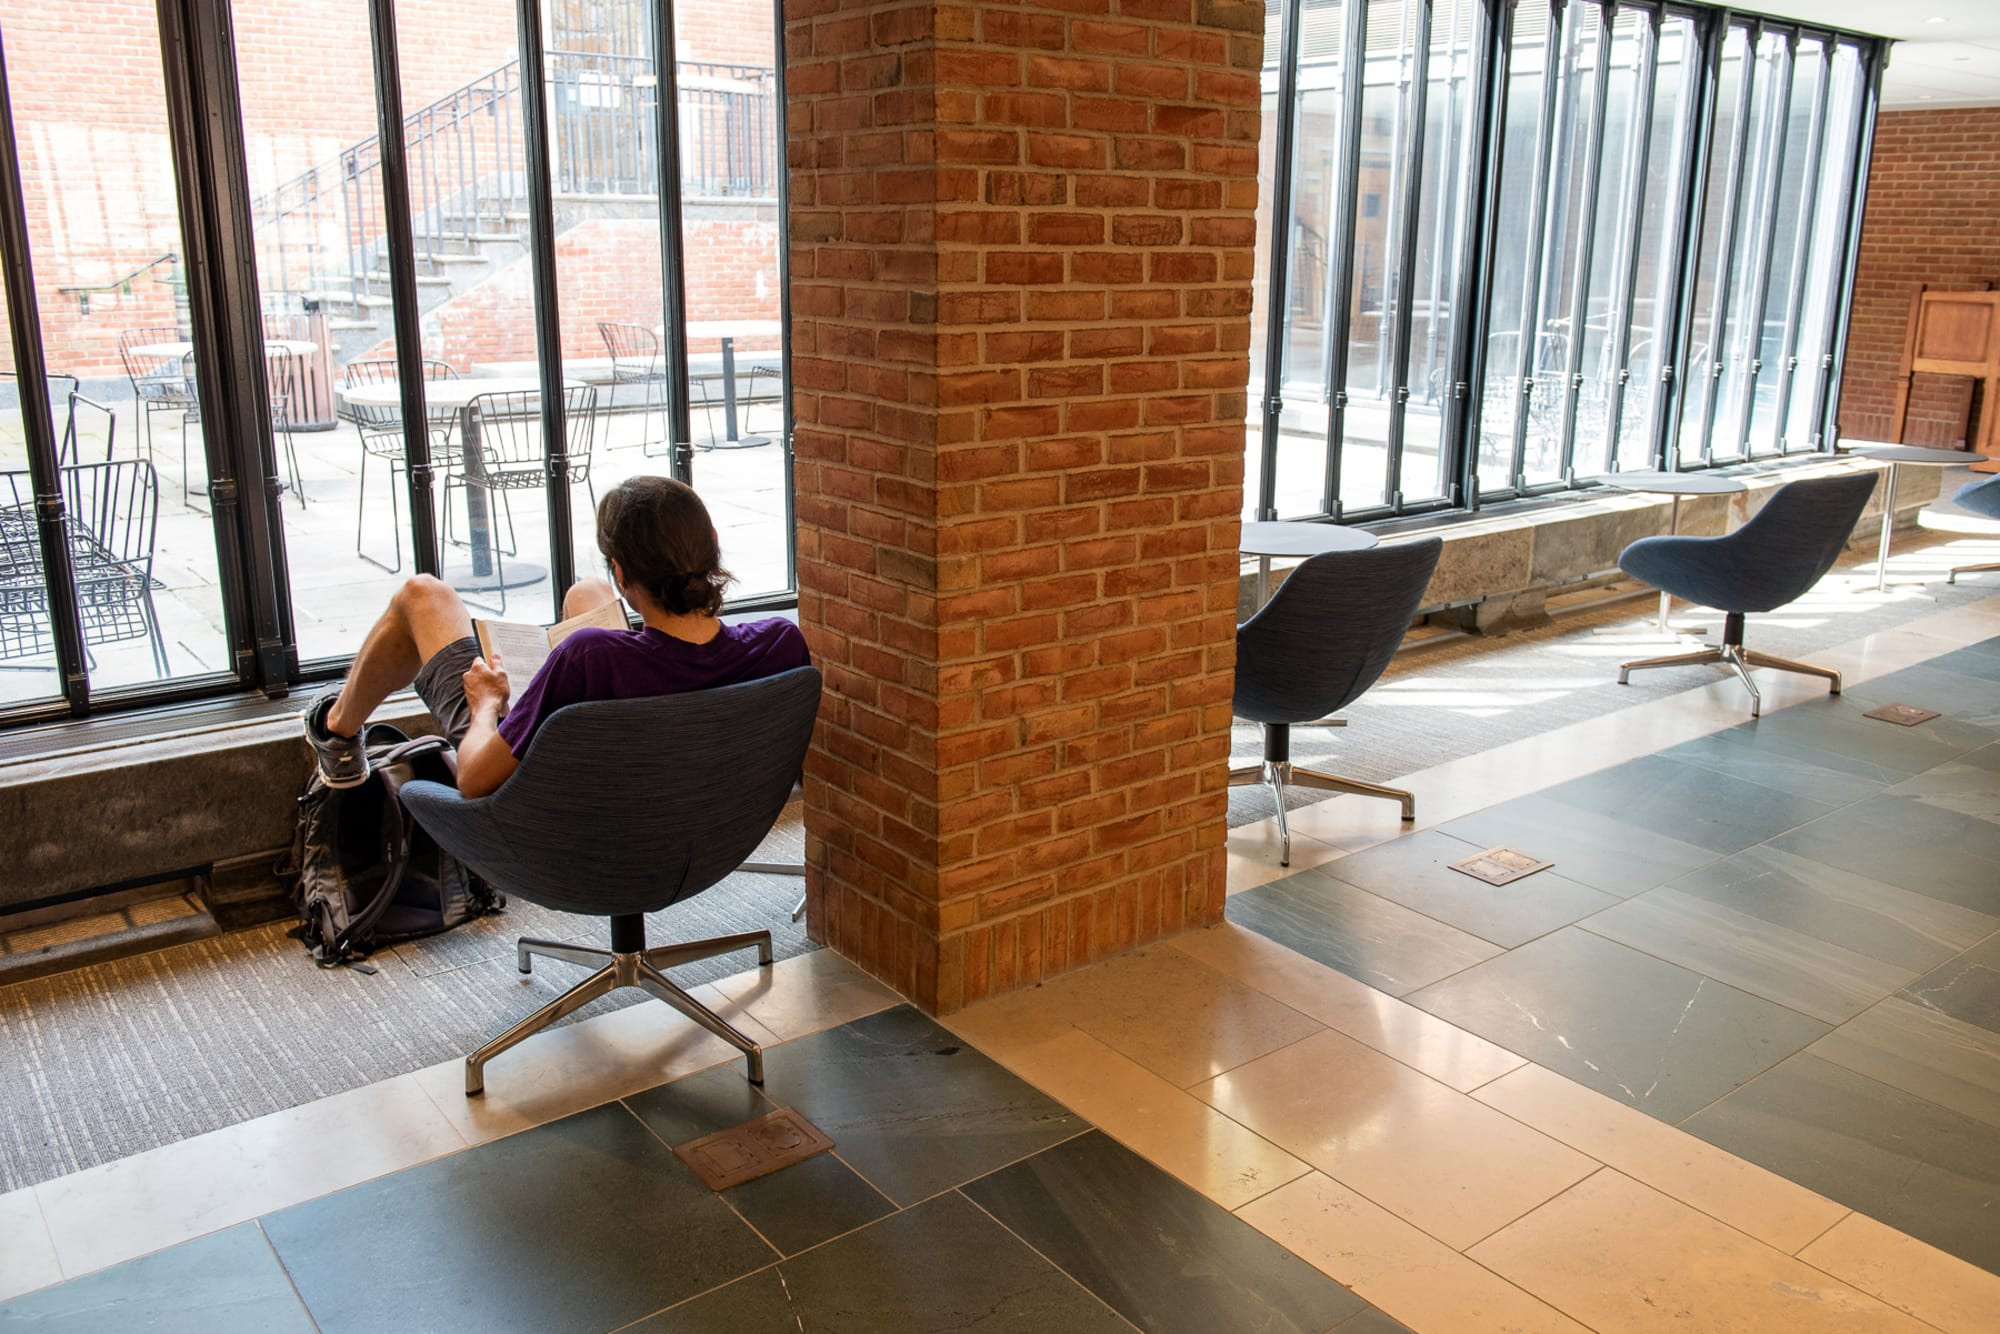 Male student with back to camera sitting in chair facing Bass LIbrary courtyard.